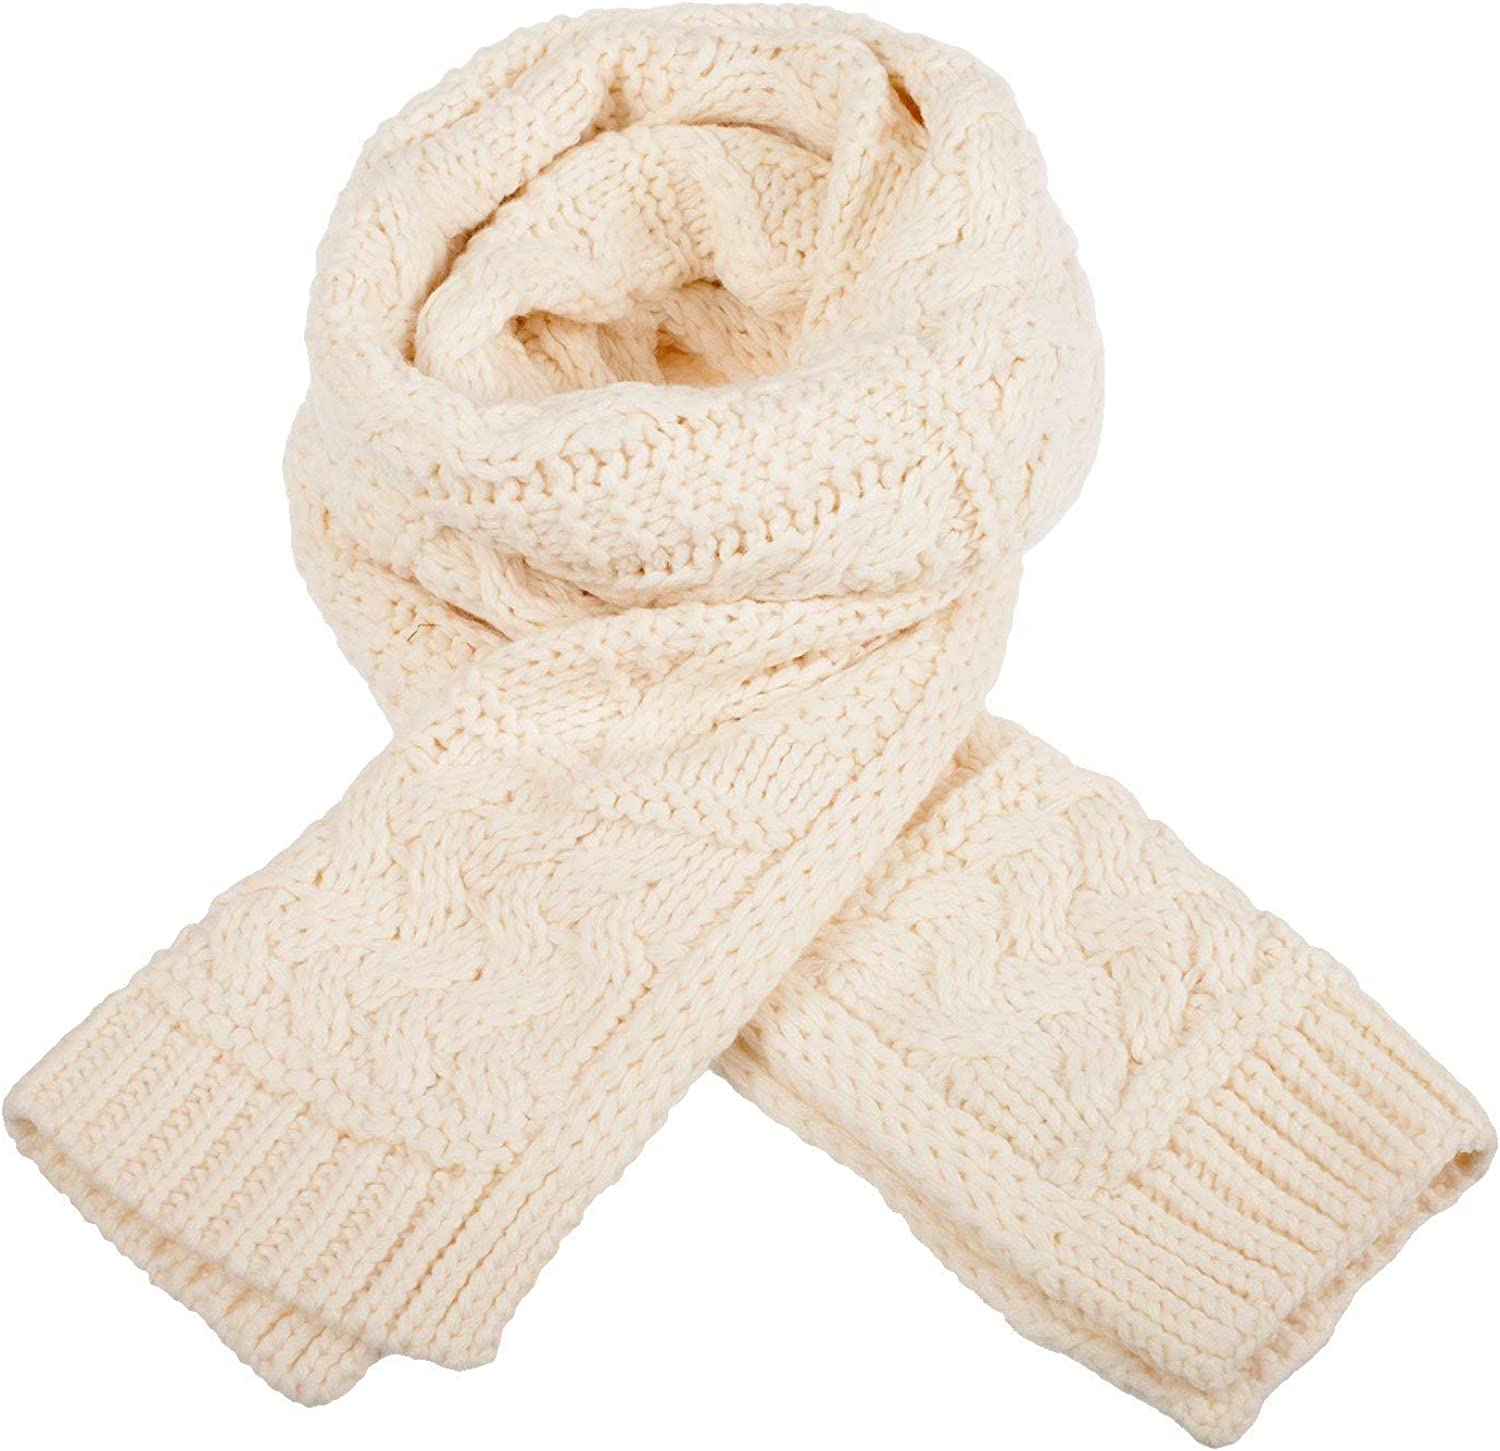 Cream Knit Style Scarf, Soft Warm And Cosy 50% Acrylic And 50% Polyester